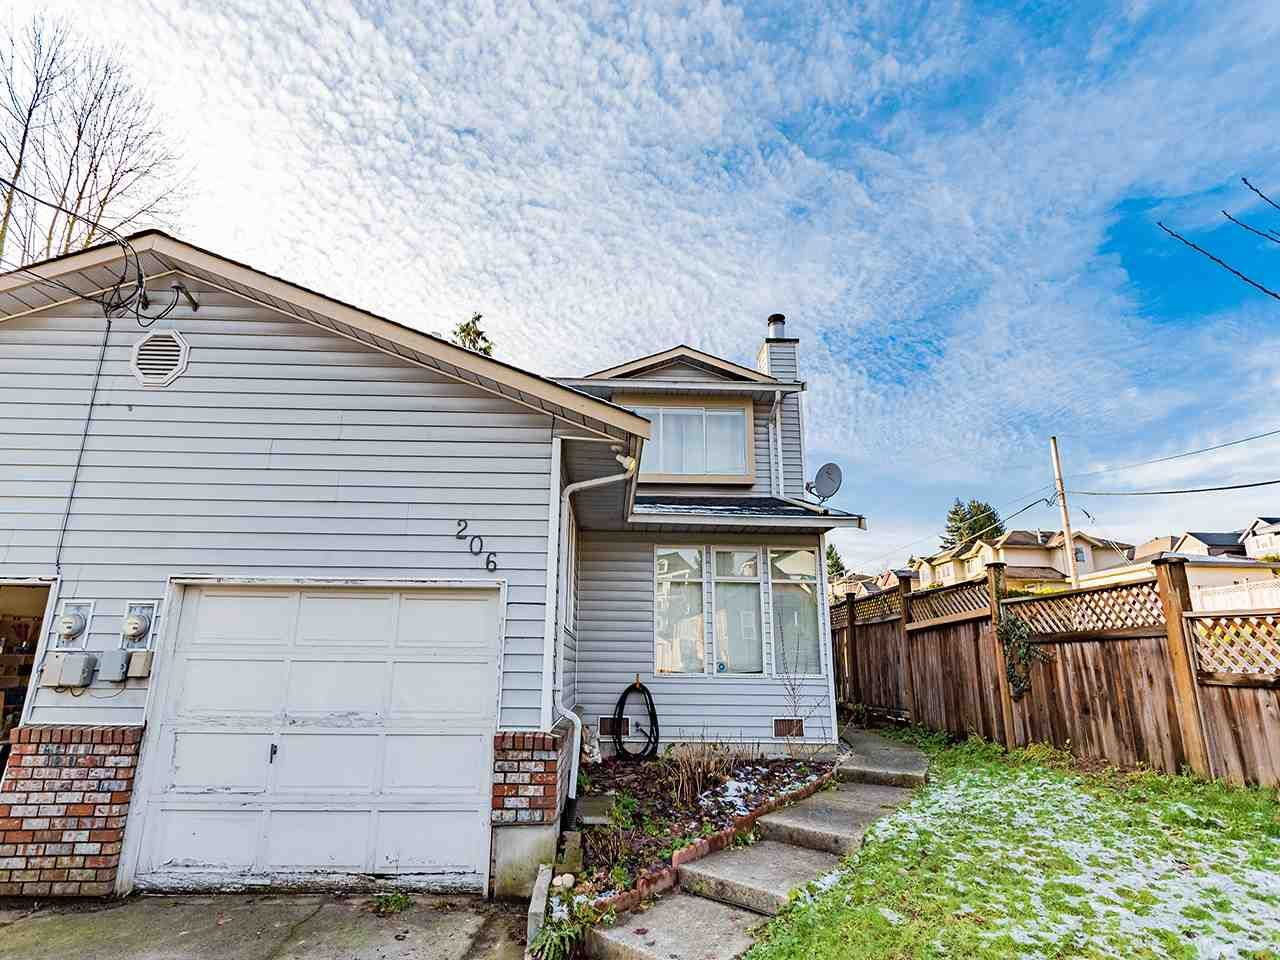 Main Photo: 206 ALLARD Street in Coquitlam: Maillardville 1/2 Duplex for sale : MLS®# R2542556